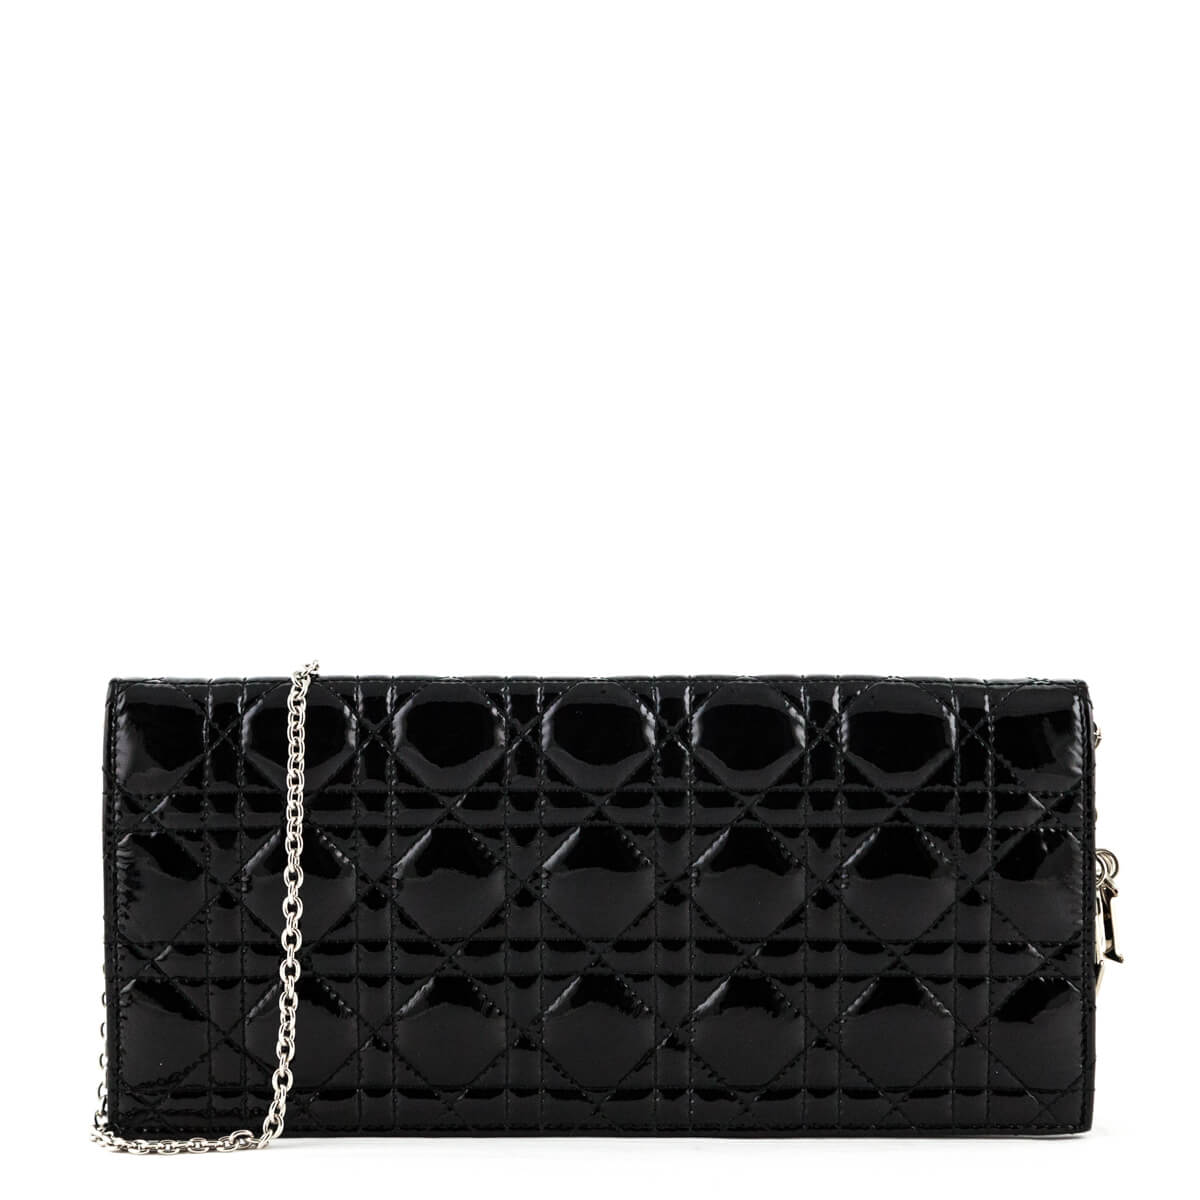 12c1be431a9fda Dior Black Patent Cannage Lady Dior Convertible Clutch - LOVE that BAG -  Preowned Authentic Designer ...